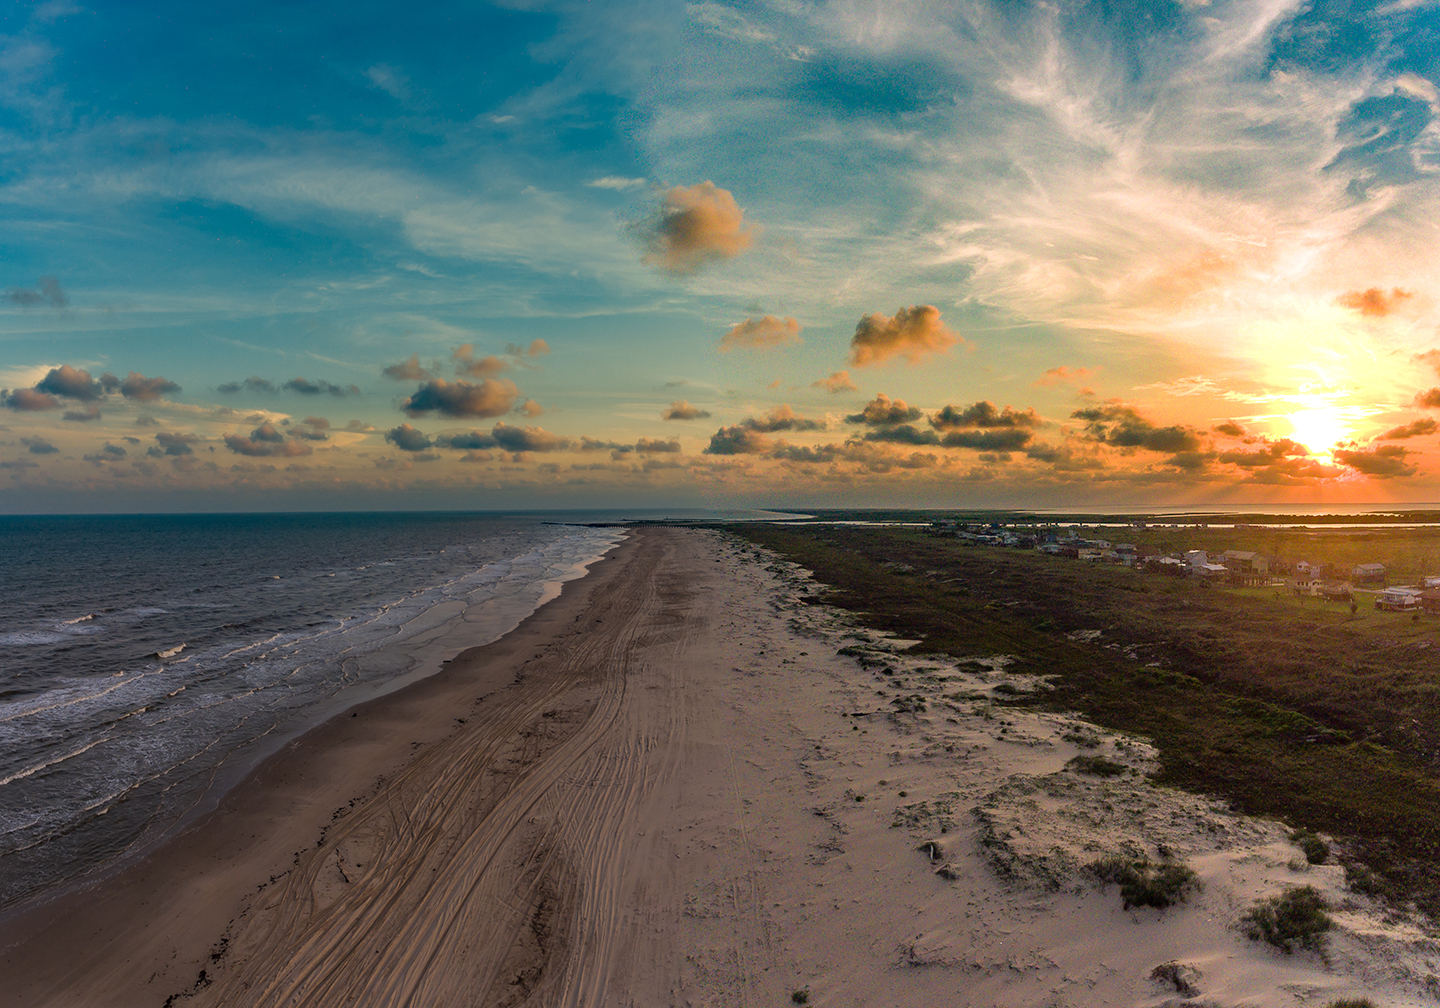 An aerial view of Matagorda Beach in Texas, one of 2019's most up-and-coming fishing towns